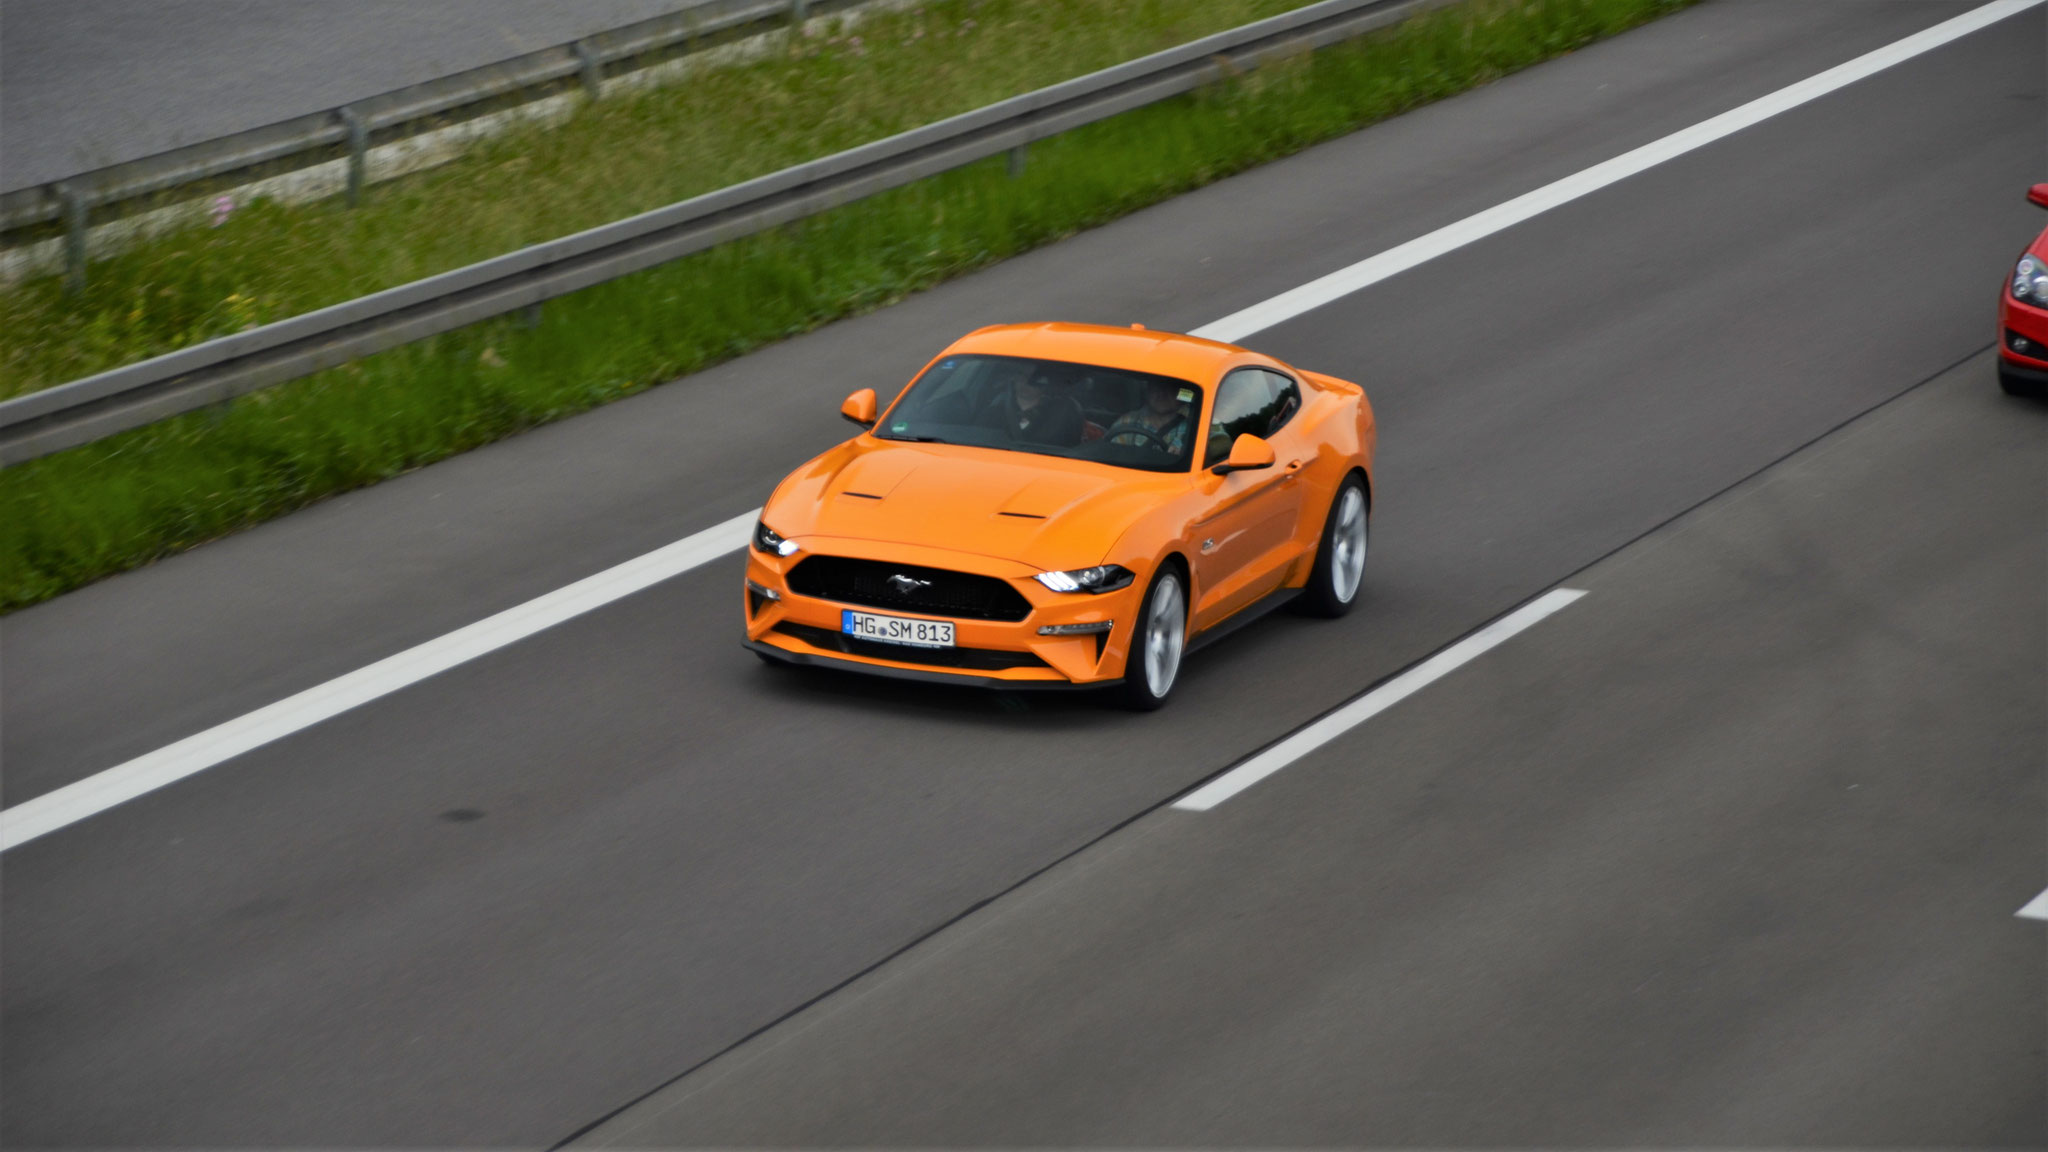 Ford Mustang GT - HG-SM-813